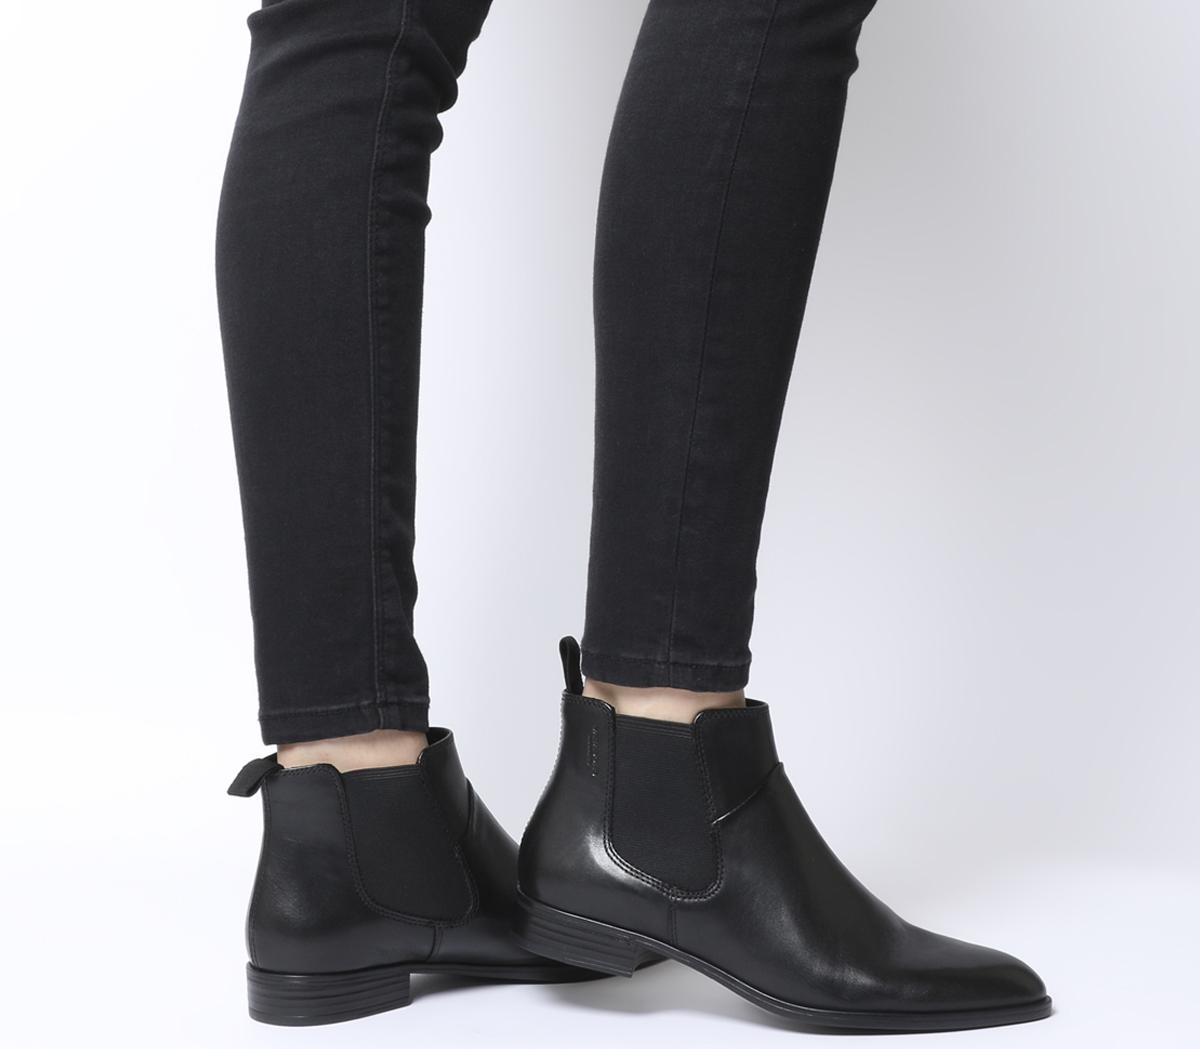 Frances Sister Chelsea Boots | Womens ankle boots, Black